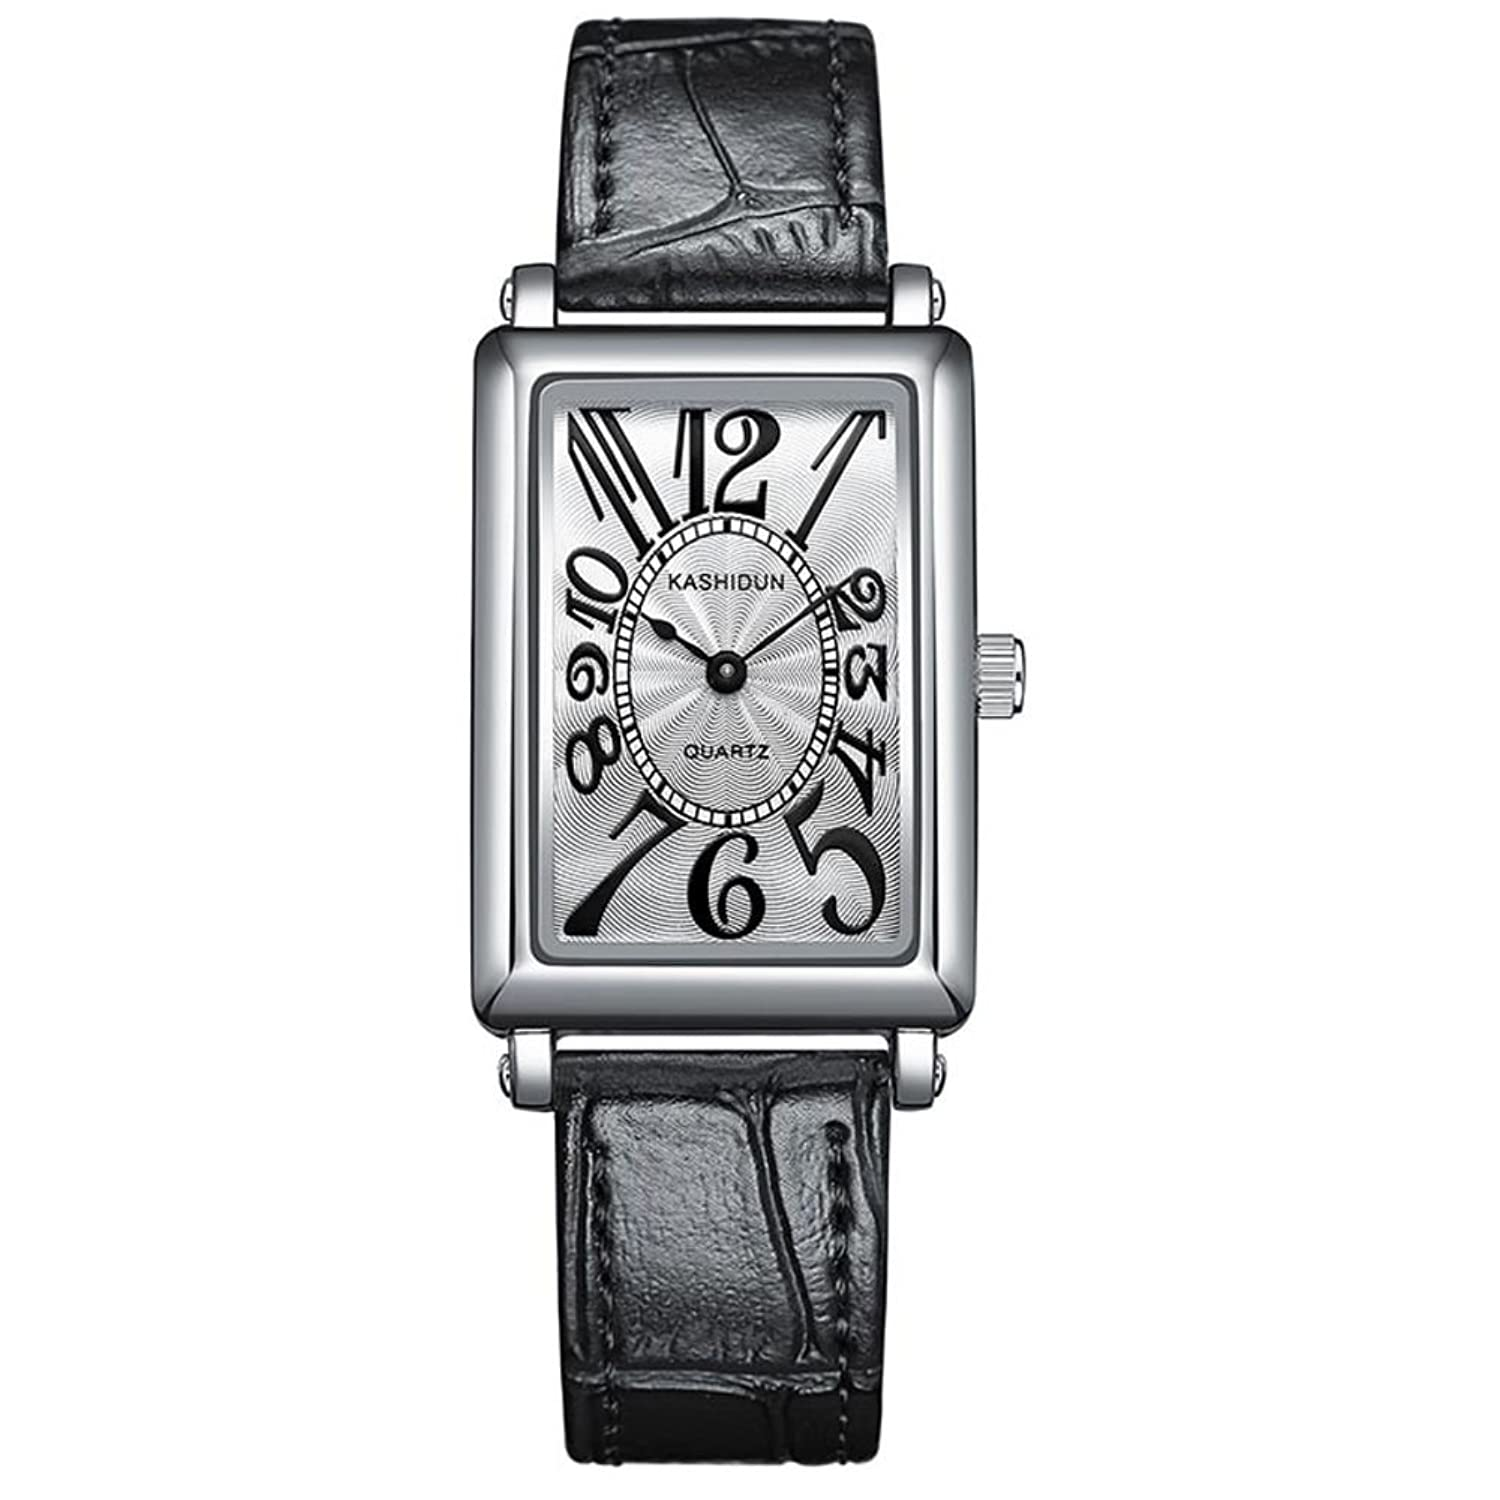 Women 's Square Watch / quartz watches防水時計/ヴィンテージカジュアルwatch-d B06XJ69F6D